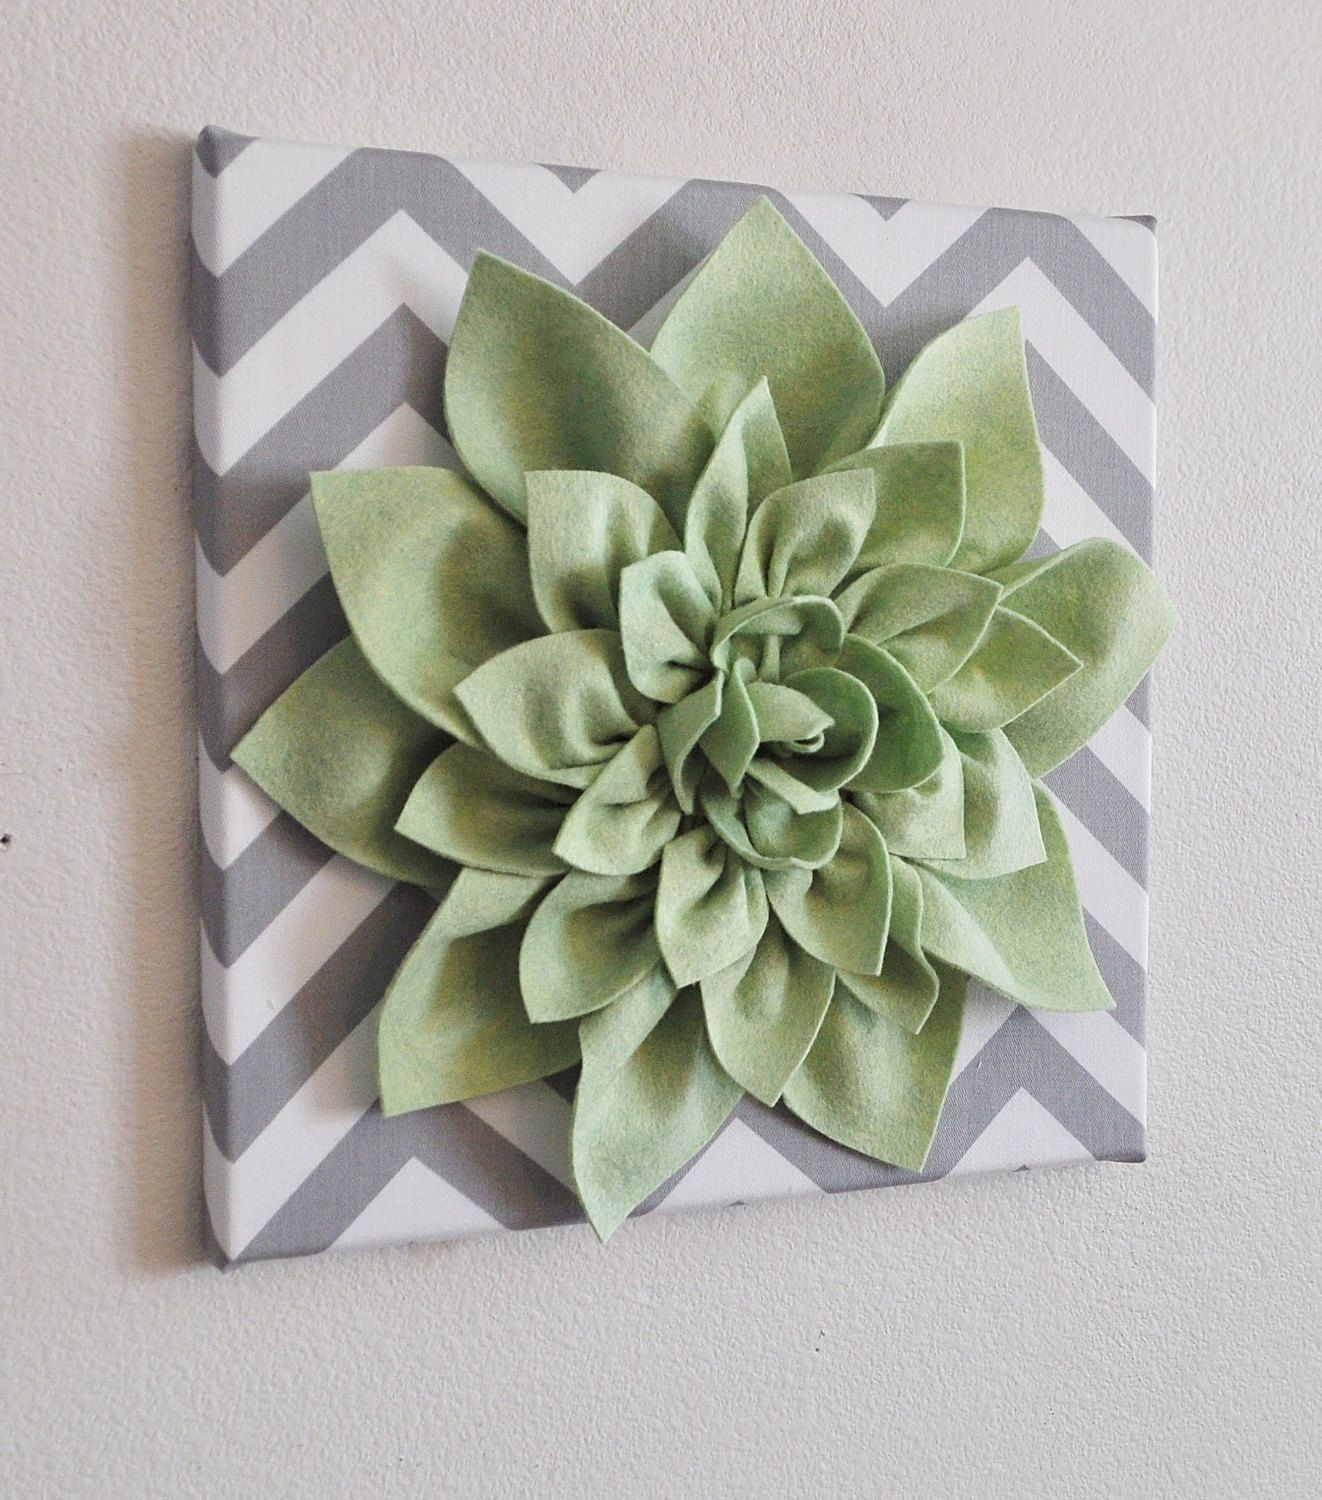 Items Similar To Flower Wall Hanging  Light Green Dahlia On Gray And White  Chevron 12 Canvas Wall Art  Spring Wall Decor On Etsy